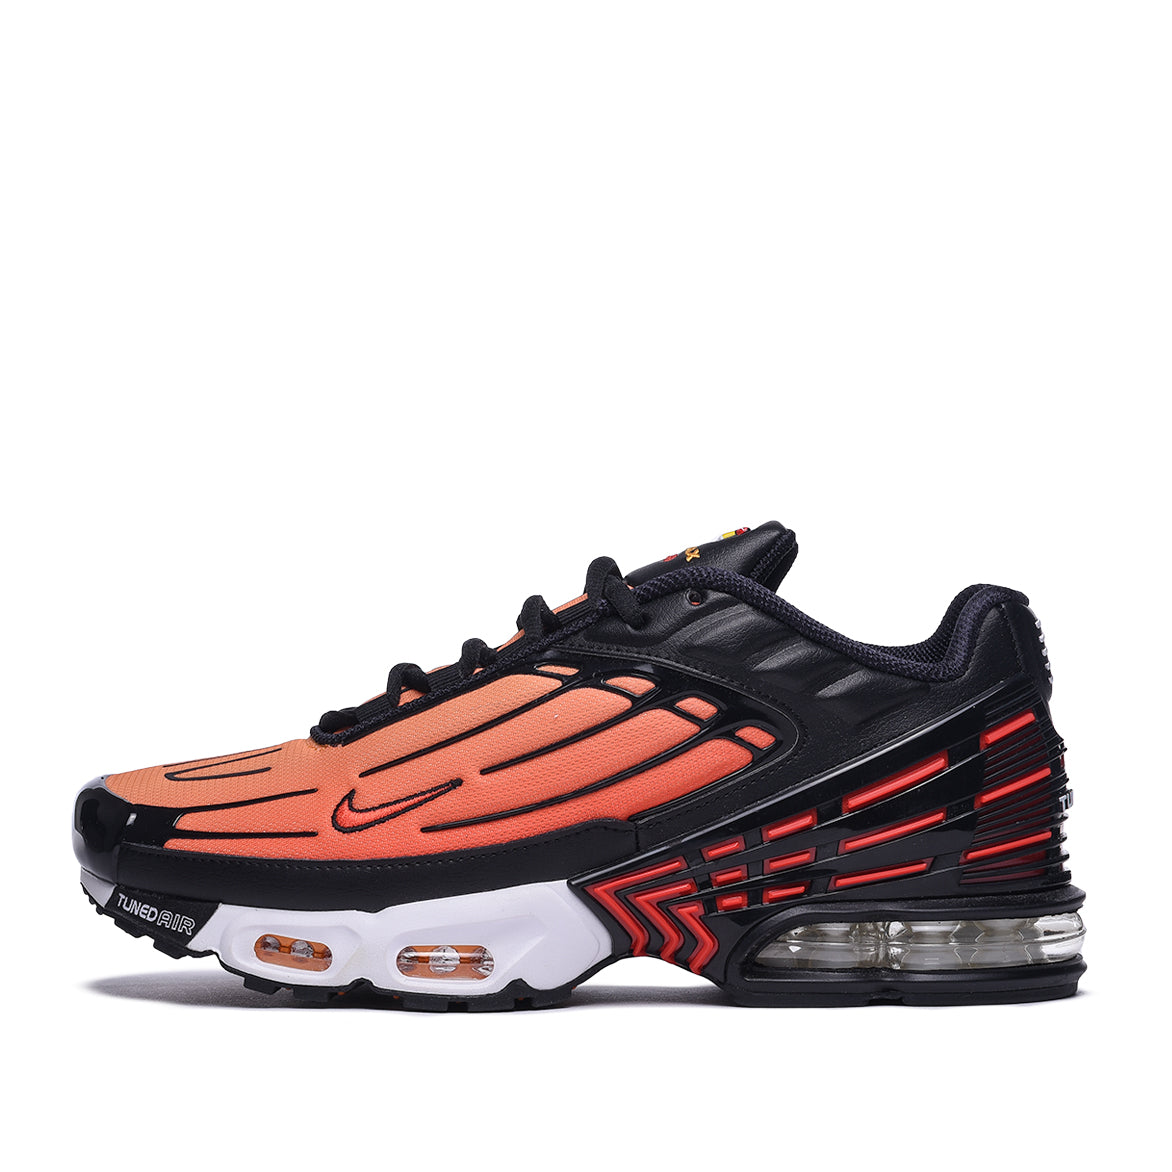 AIR MAX PLUS III - BLACK / PIMENTO / BRIGHT CERAMIC